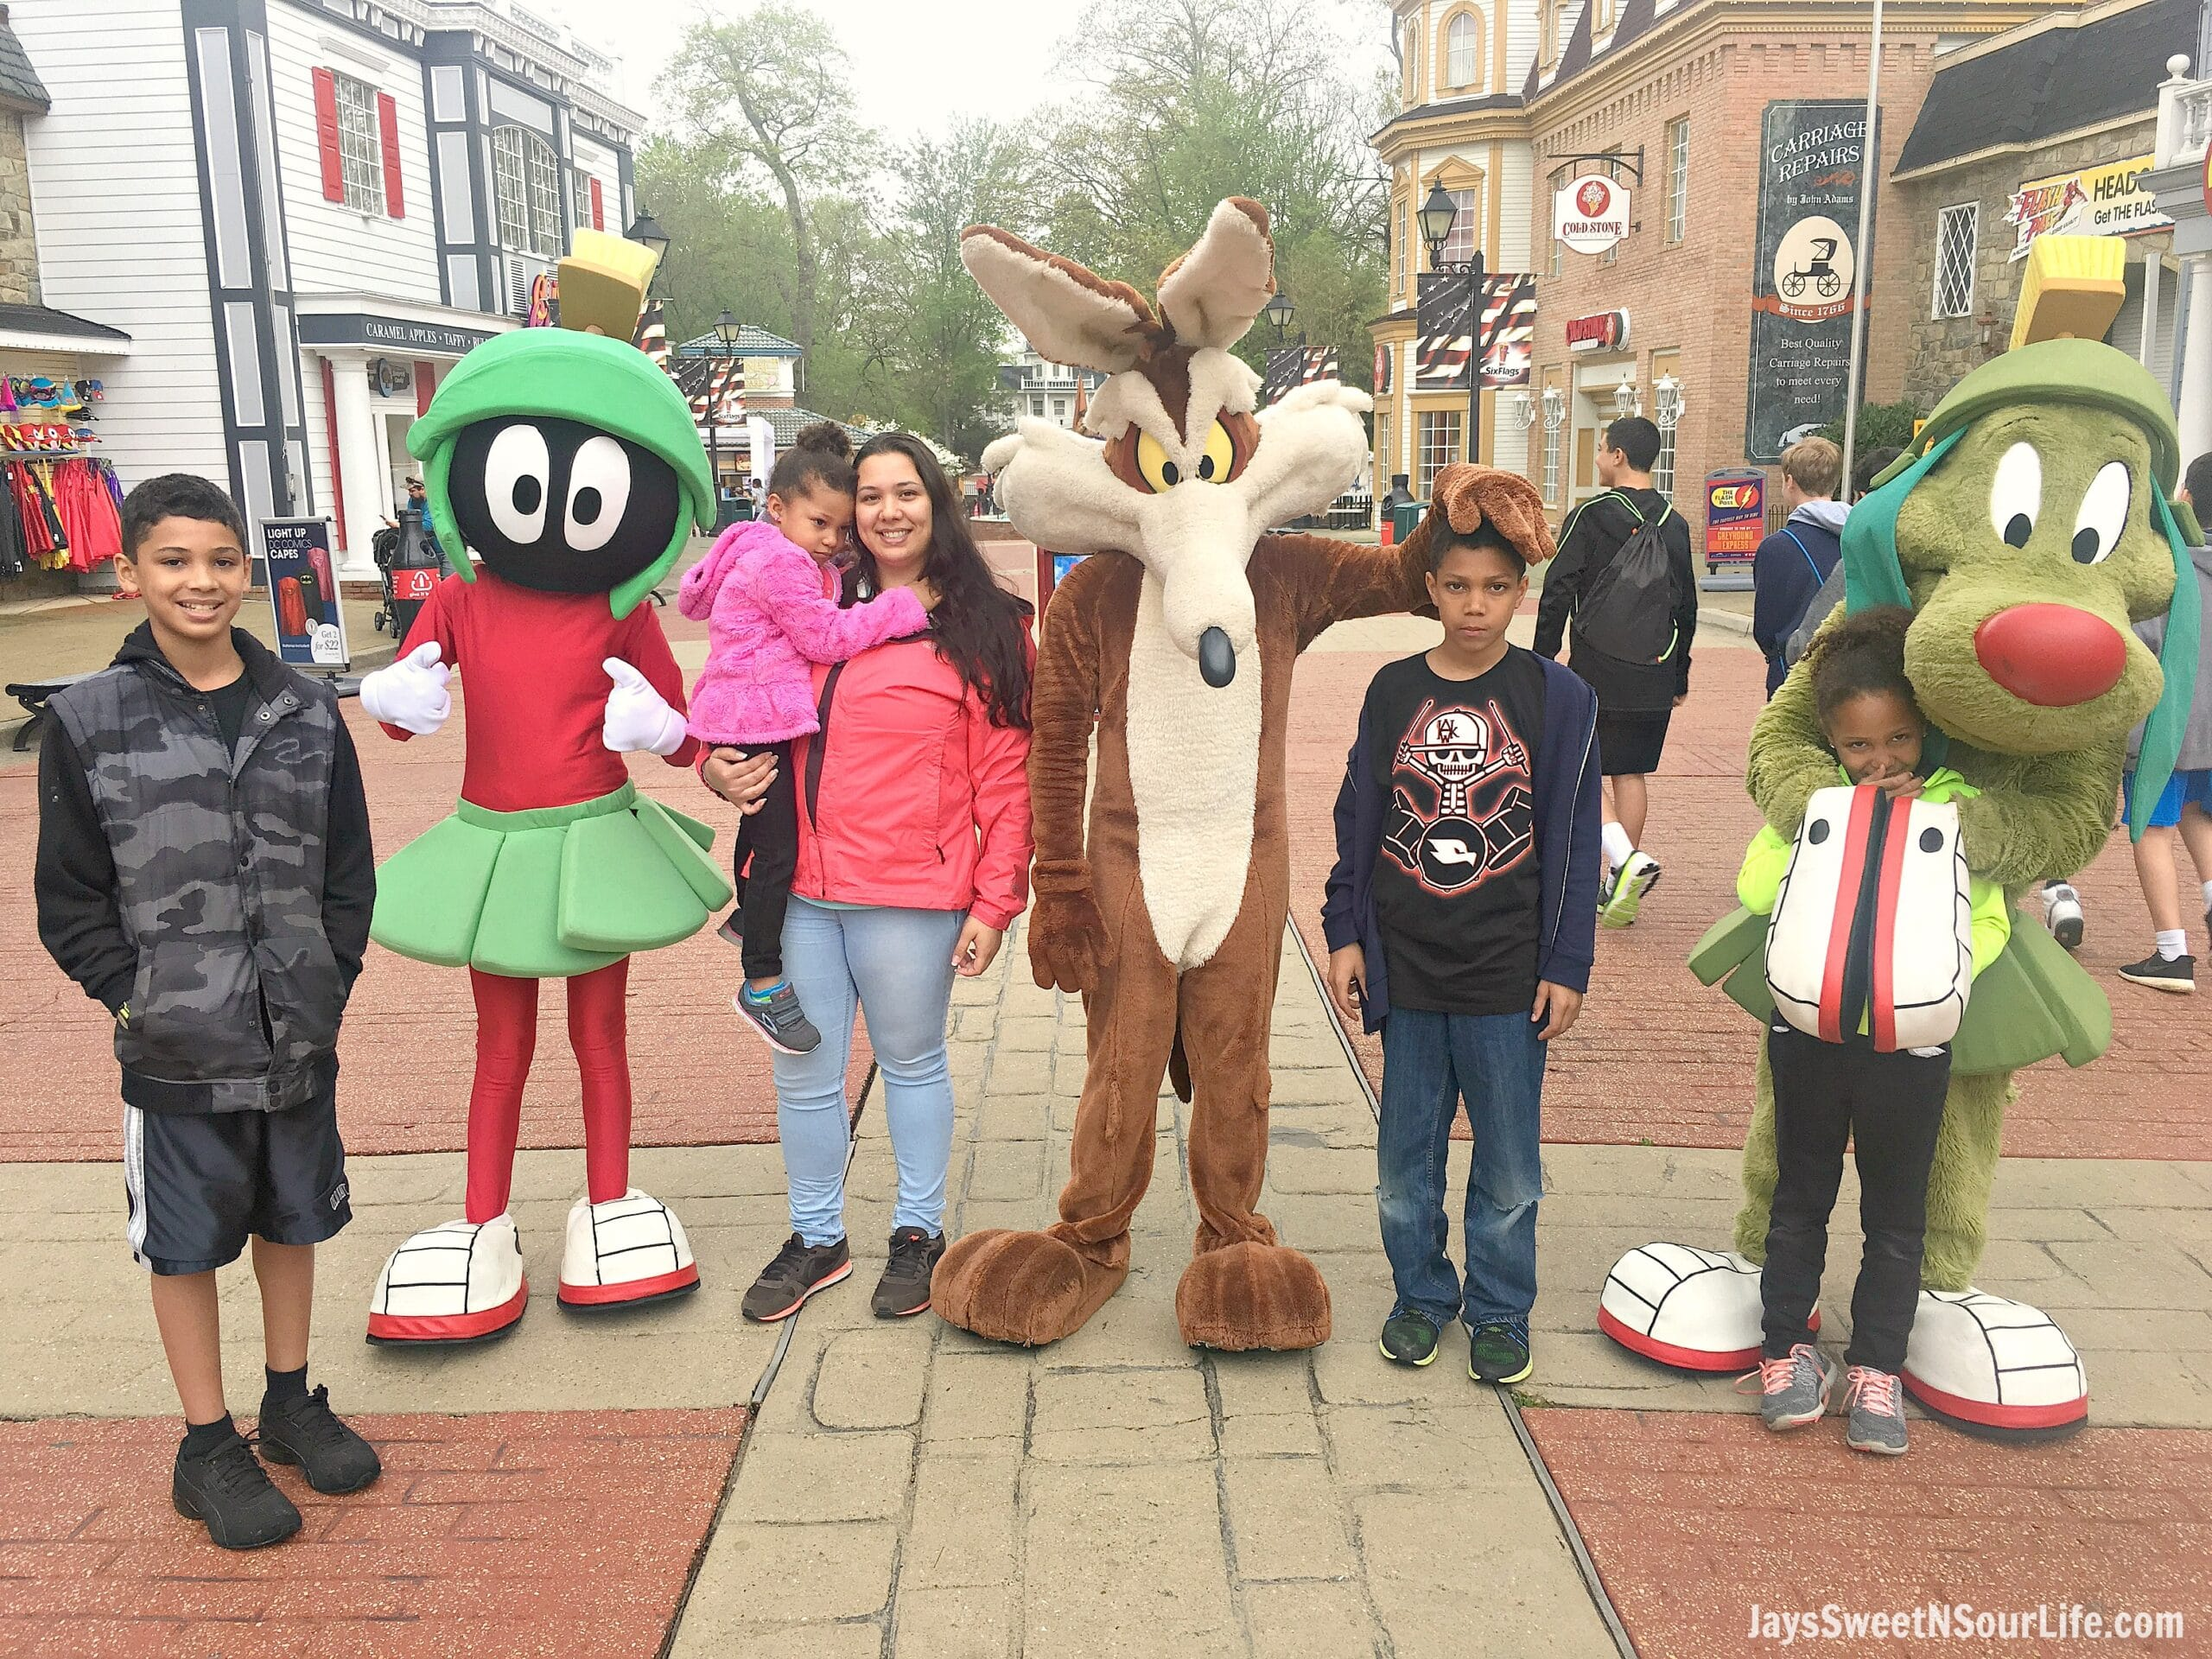 8 Tips For Rainy Day Fun At Six Flags America Family. If you are planning a trip to Six Flags America and realized the weather calls for rain don't cancel your plans! These 8 Tips For Rainy Day Fun At Six Flags America will save the day.